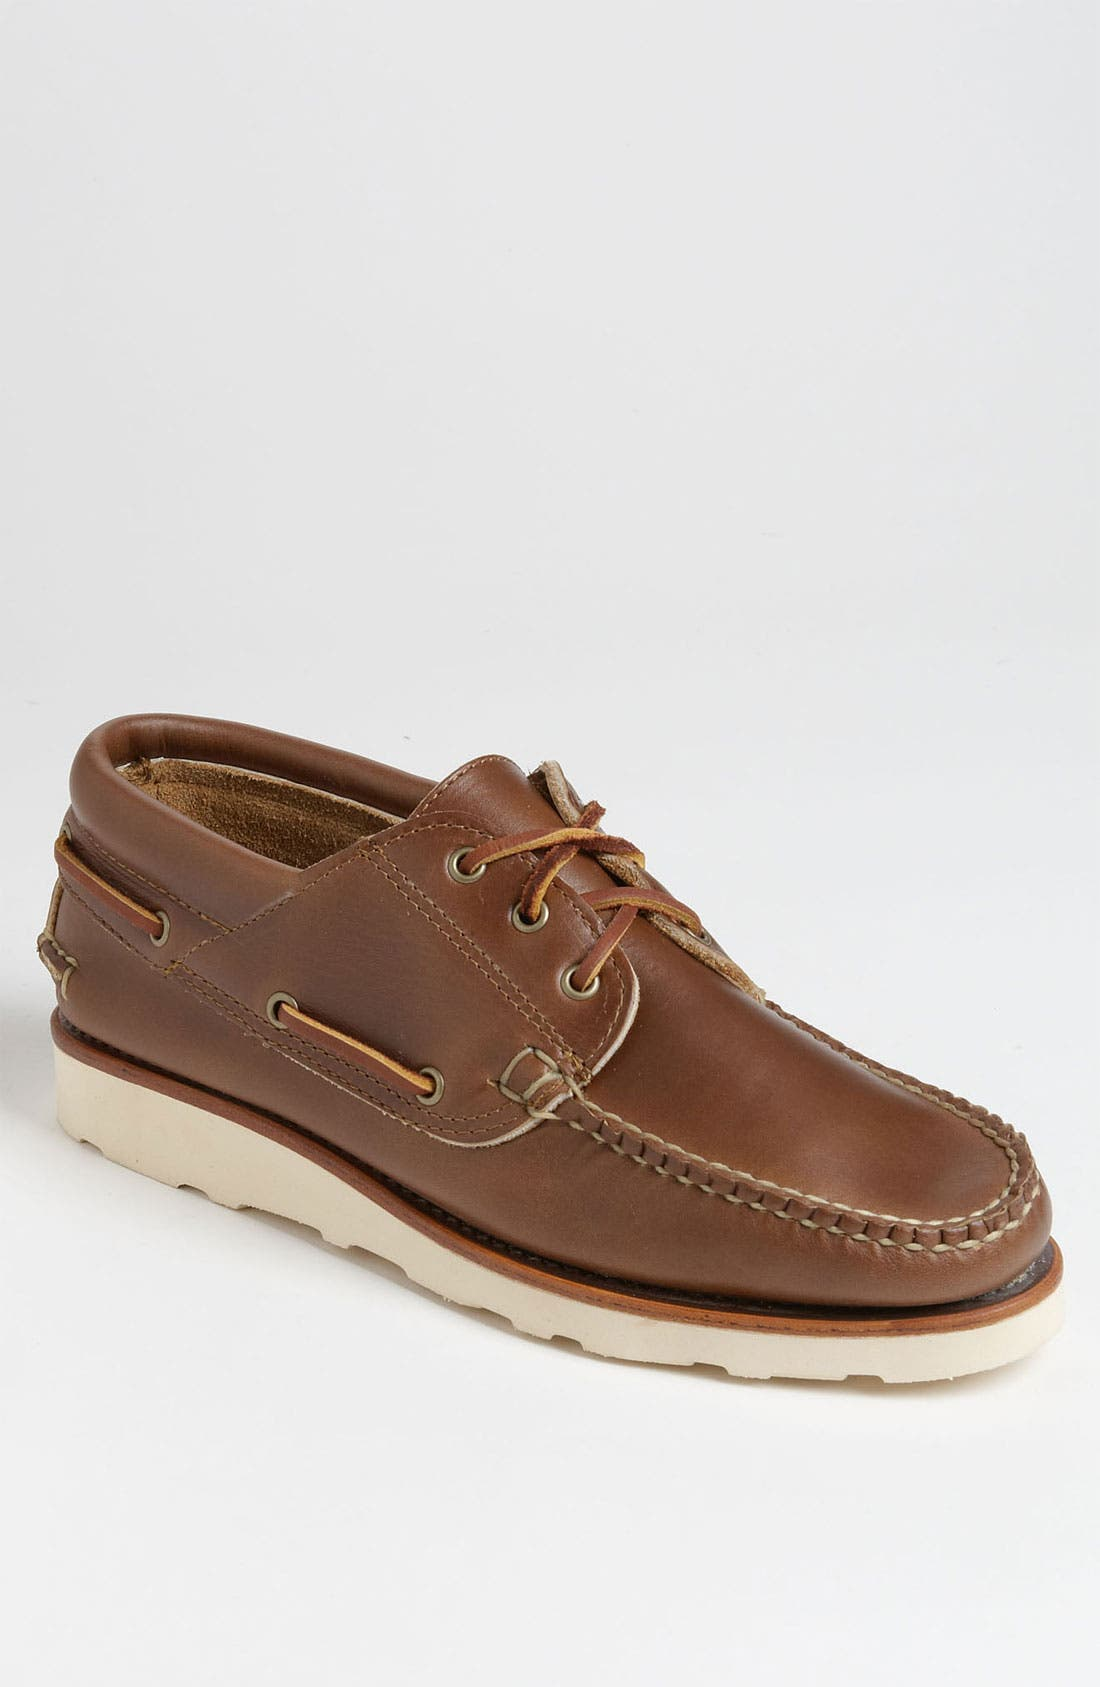 Alternate Image 1 Selected - Eastland Made in Maine 'Wiscasset USA' Boat Shoe (Online Only)